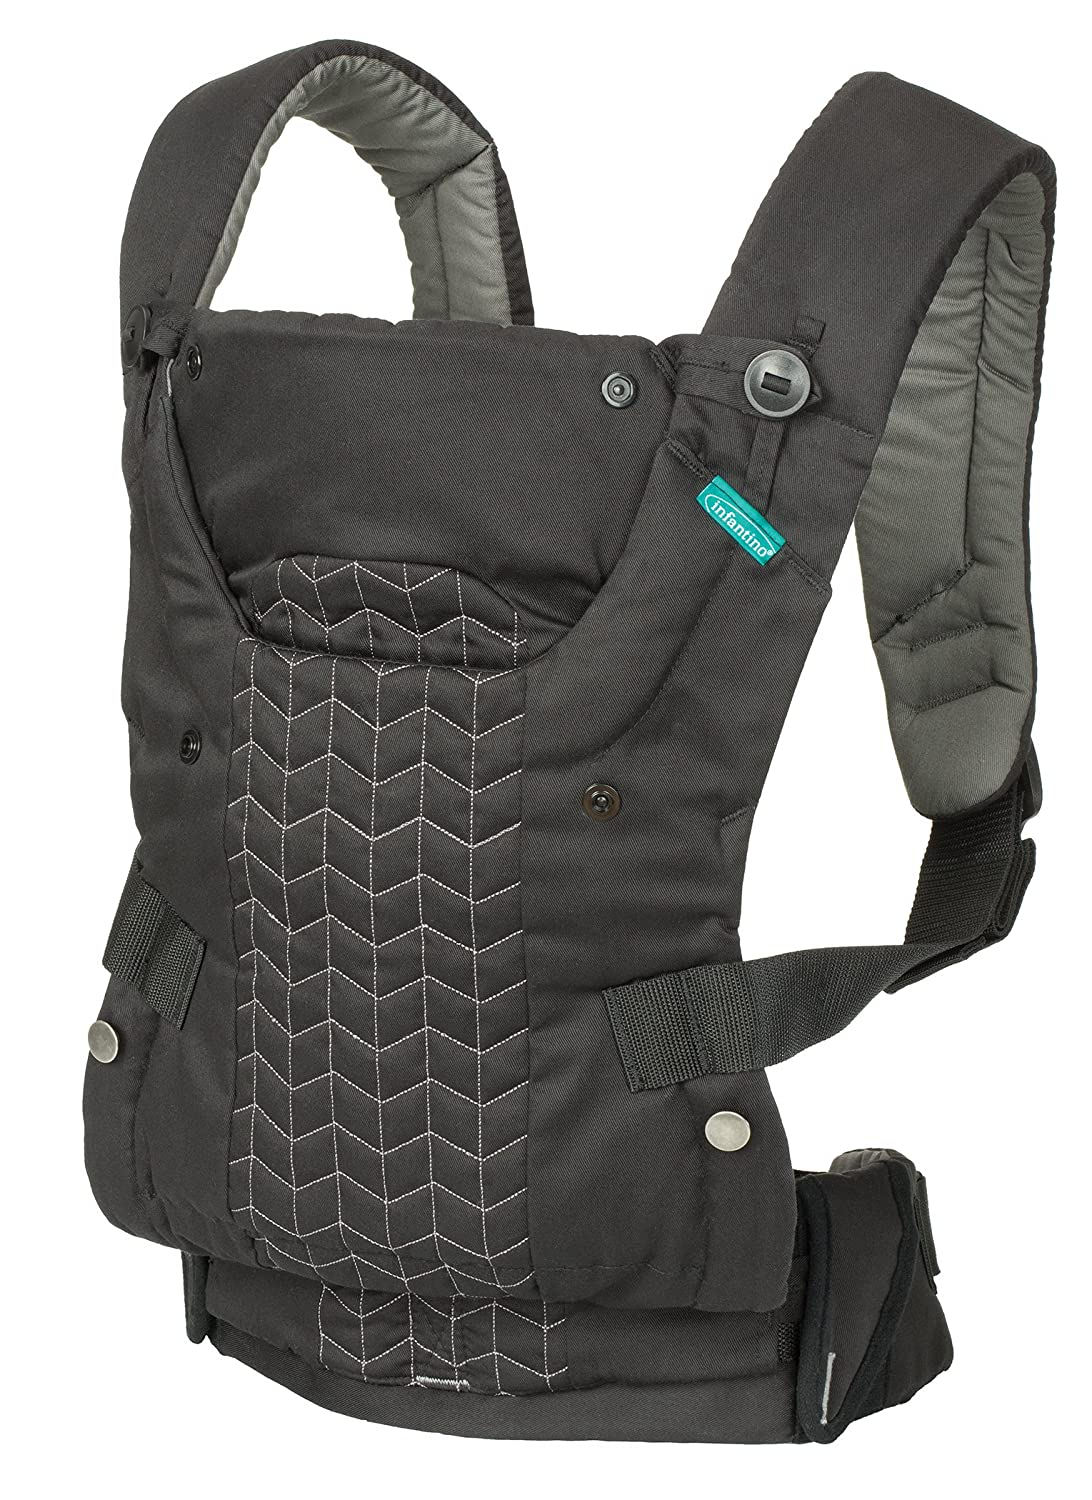 Infantino Upscale Carrier, Black, One Size 200-190